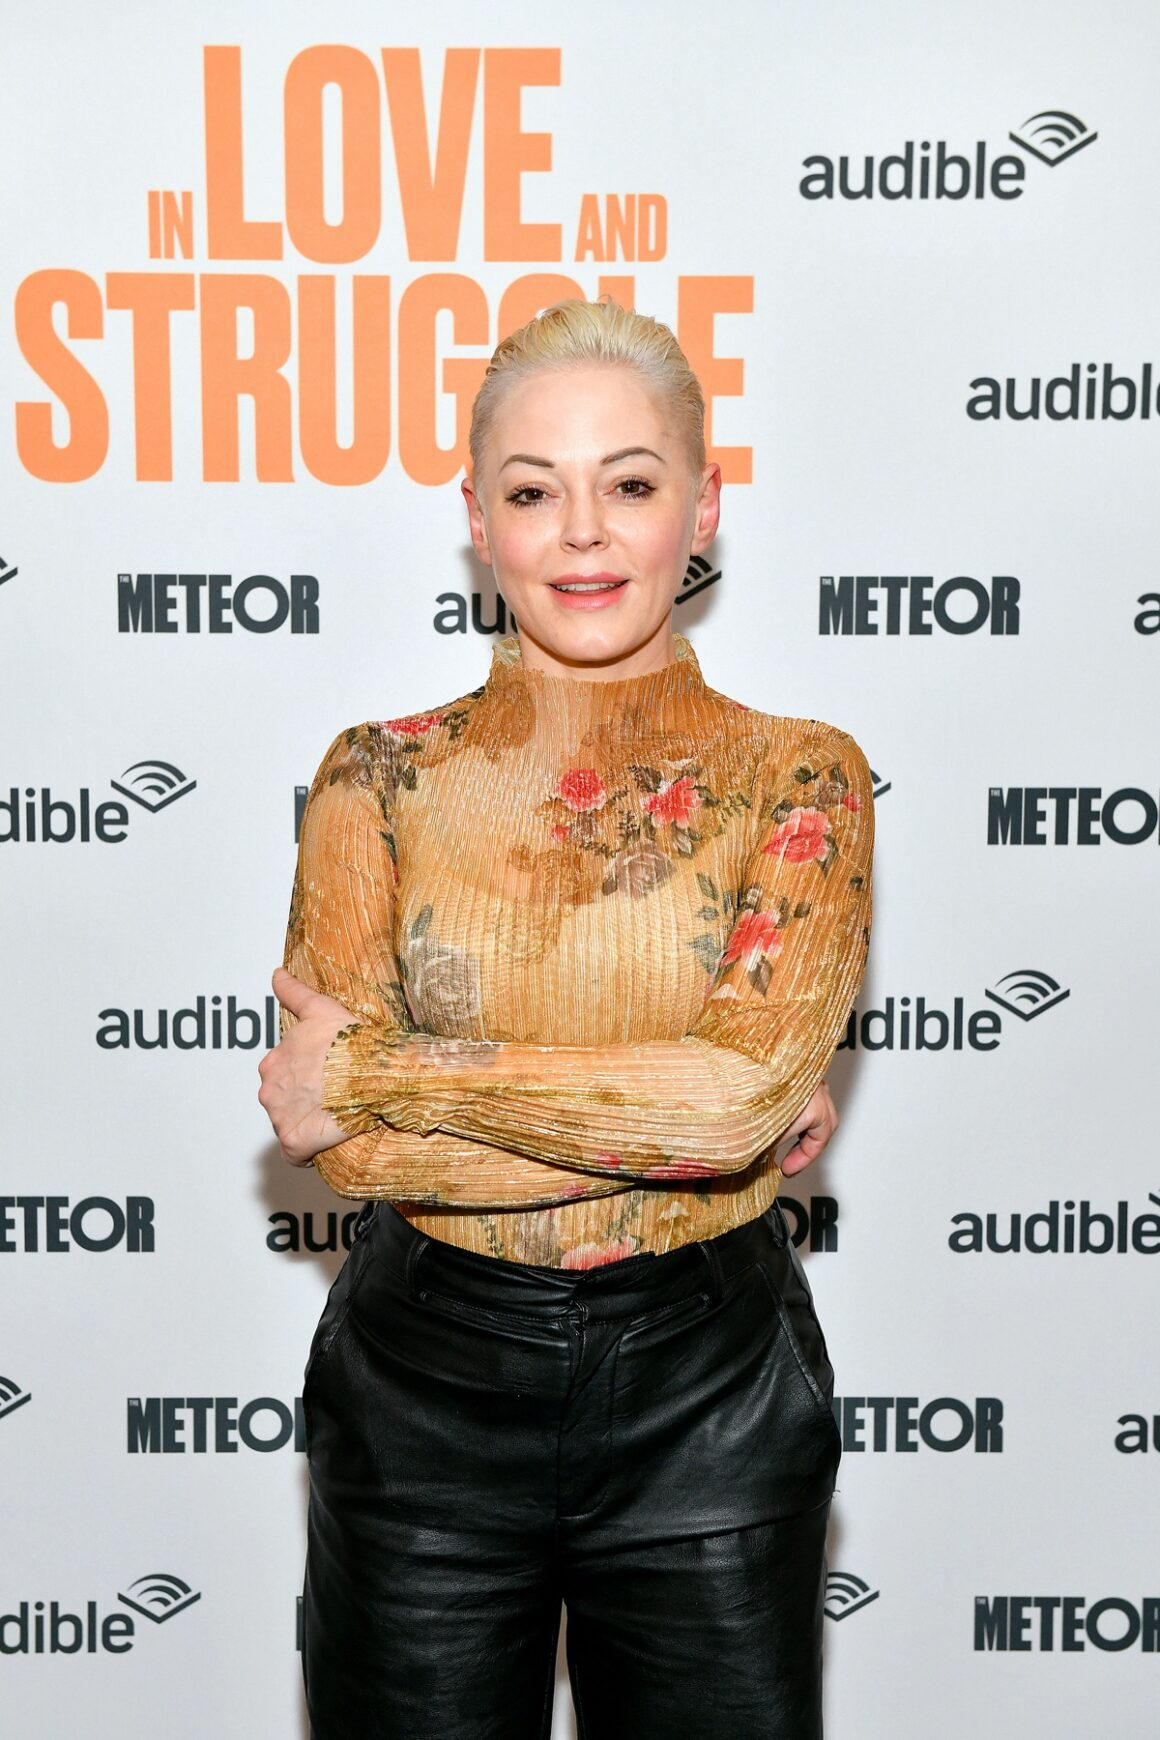 """Rose McGowan Audible Presents: """"In Love And Struggle"""" At The Minetta Lane Theatre – February 29"""